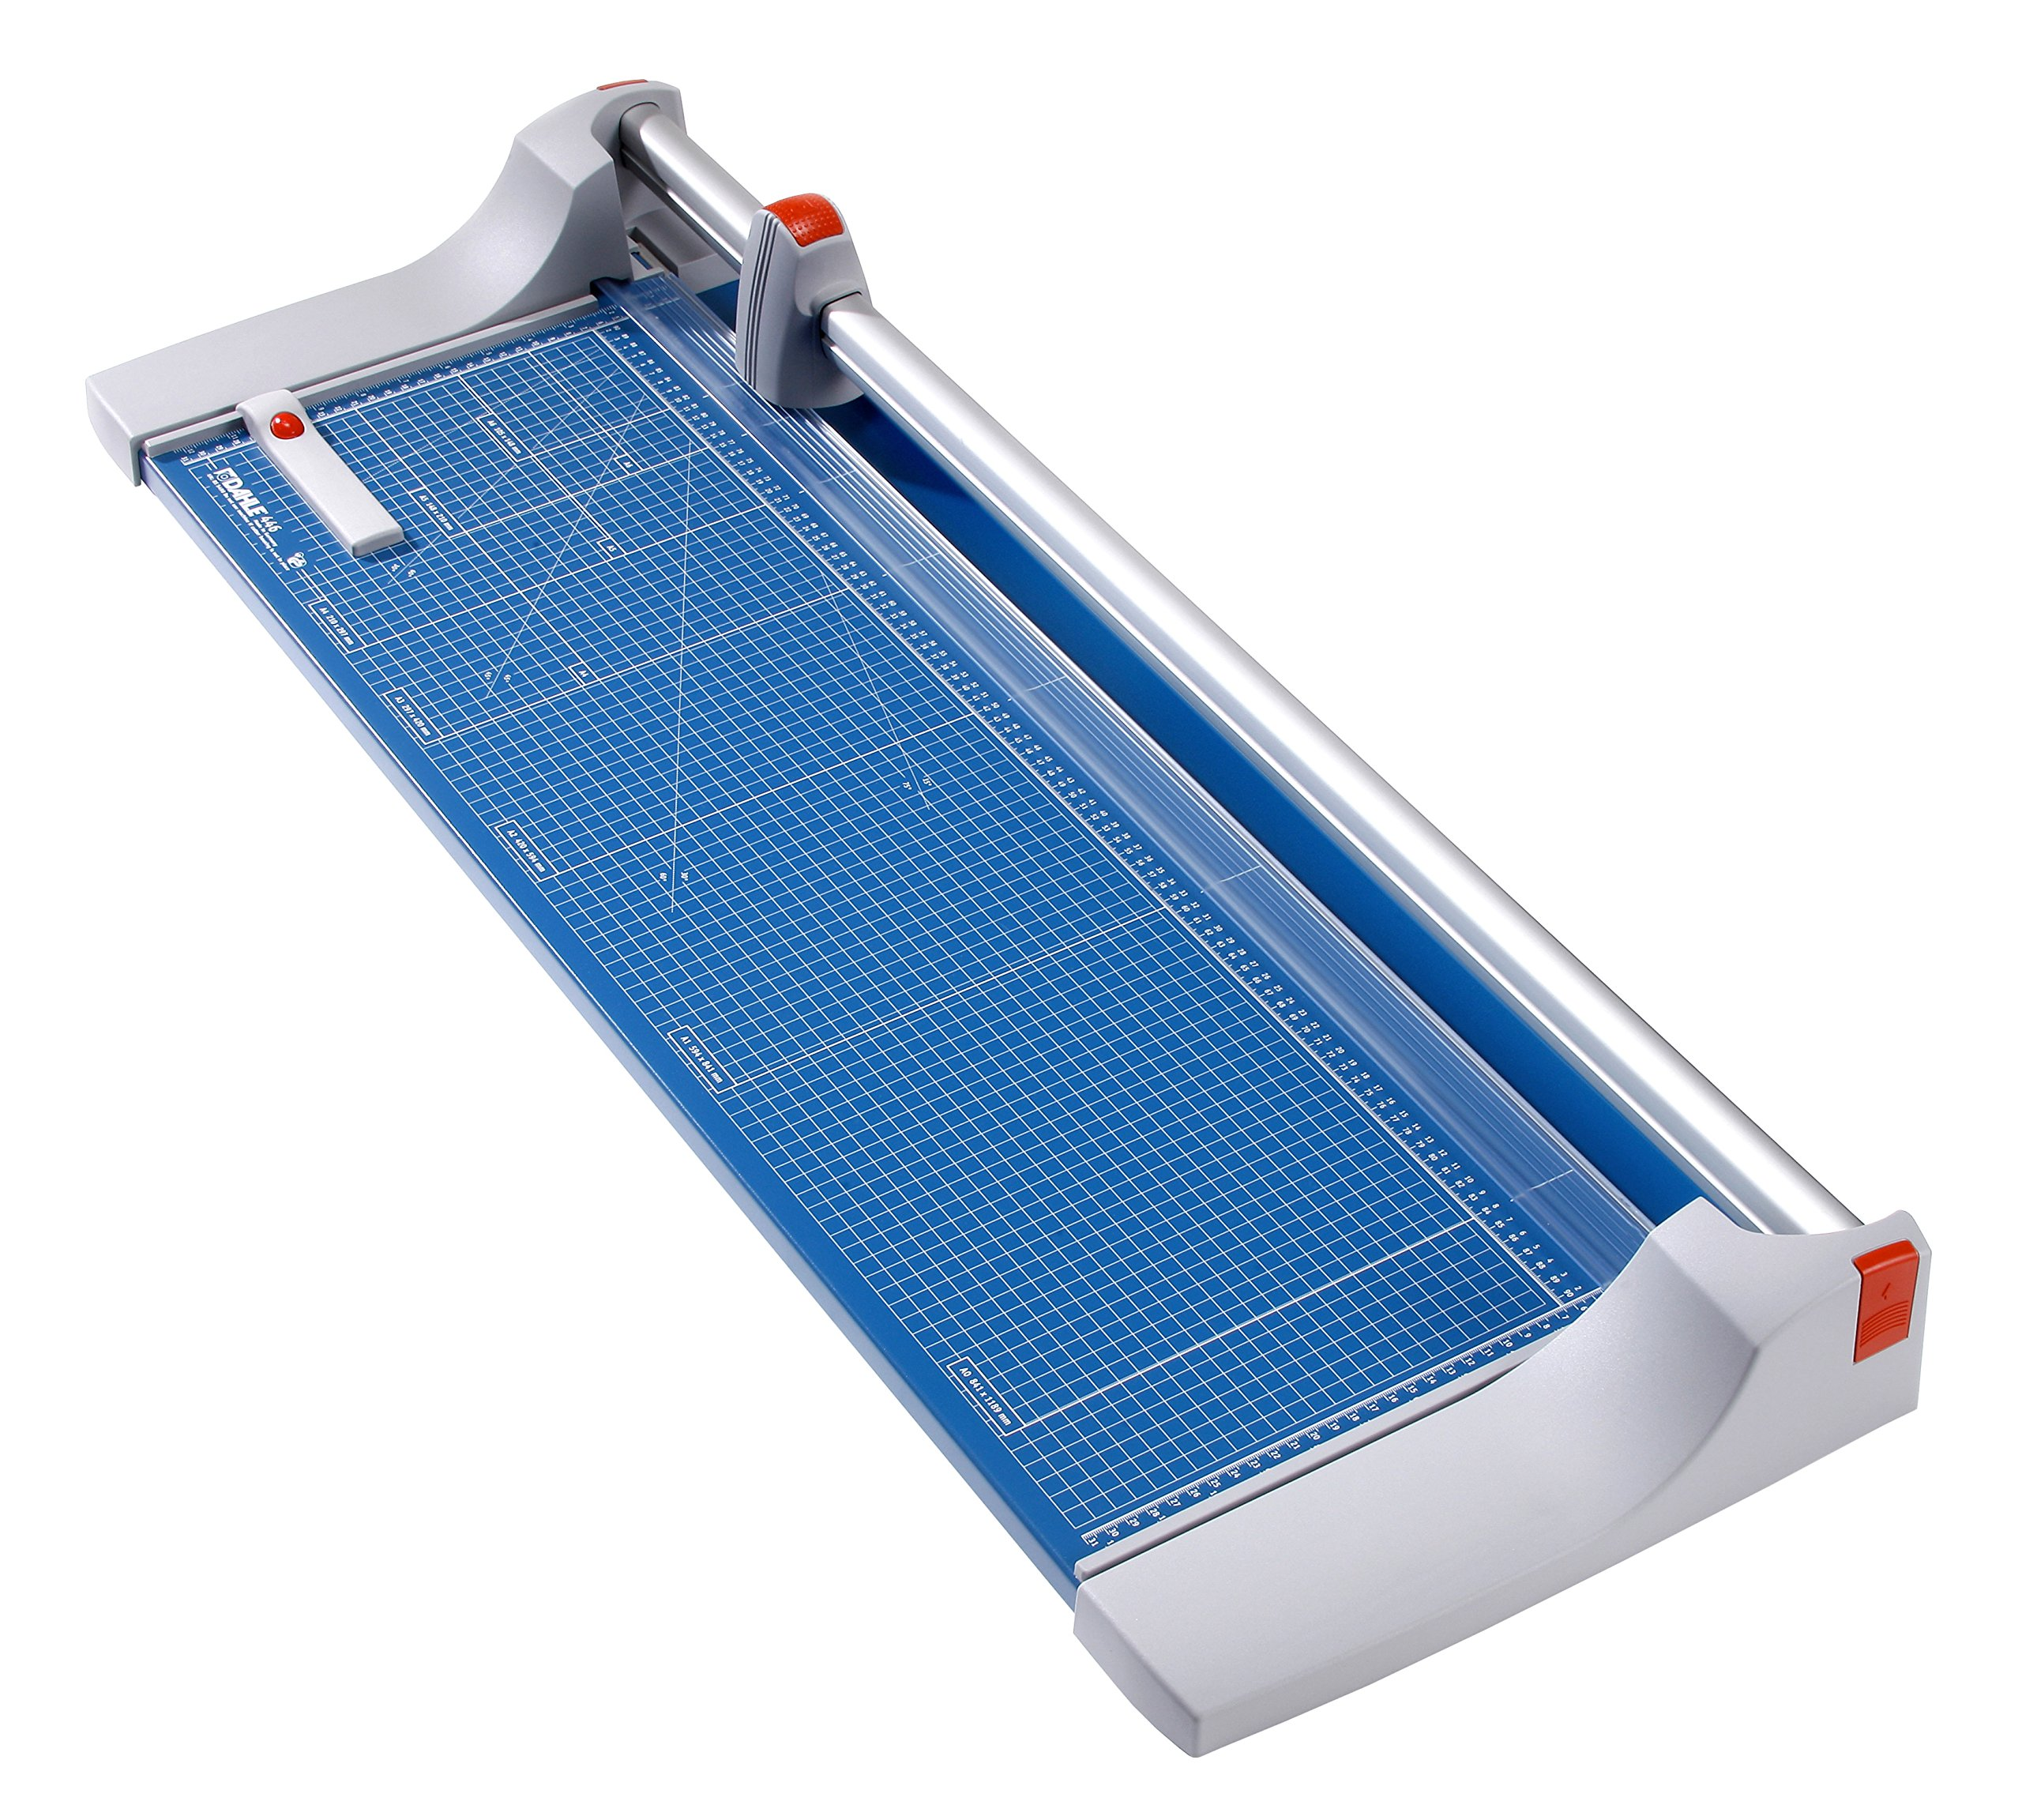 Dahle 446 Premium Rolling Trimmer, 36-1/8'' Cut Length, 25 Sheet Capacity, Self-Sharpening, Automatic Clamp, German Engineered Paper Cutter